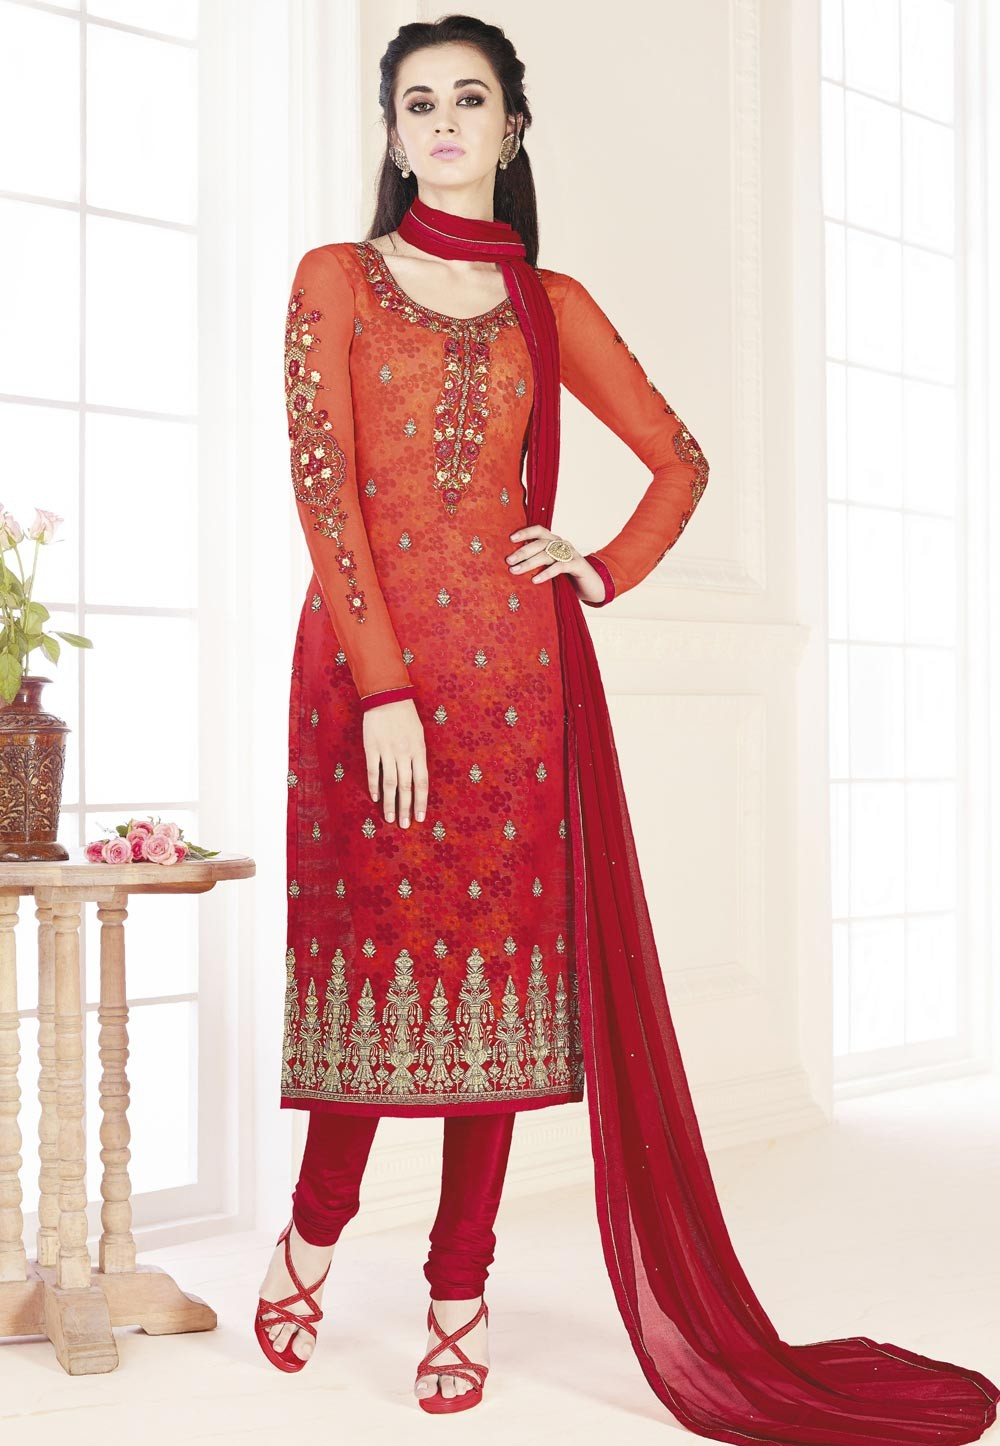 Red,Orange Color Beautiful Salwar Kameez in Embroidery Work